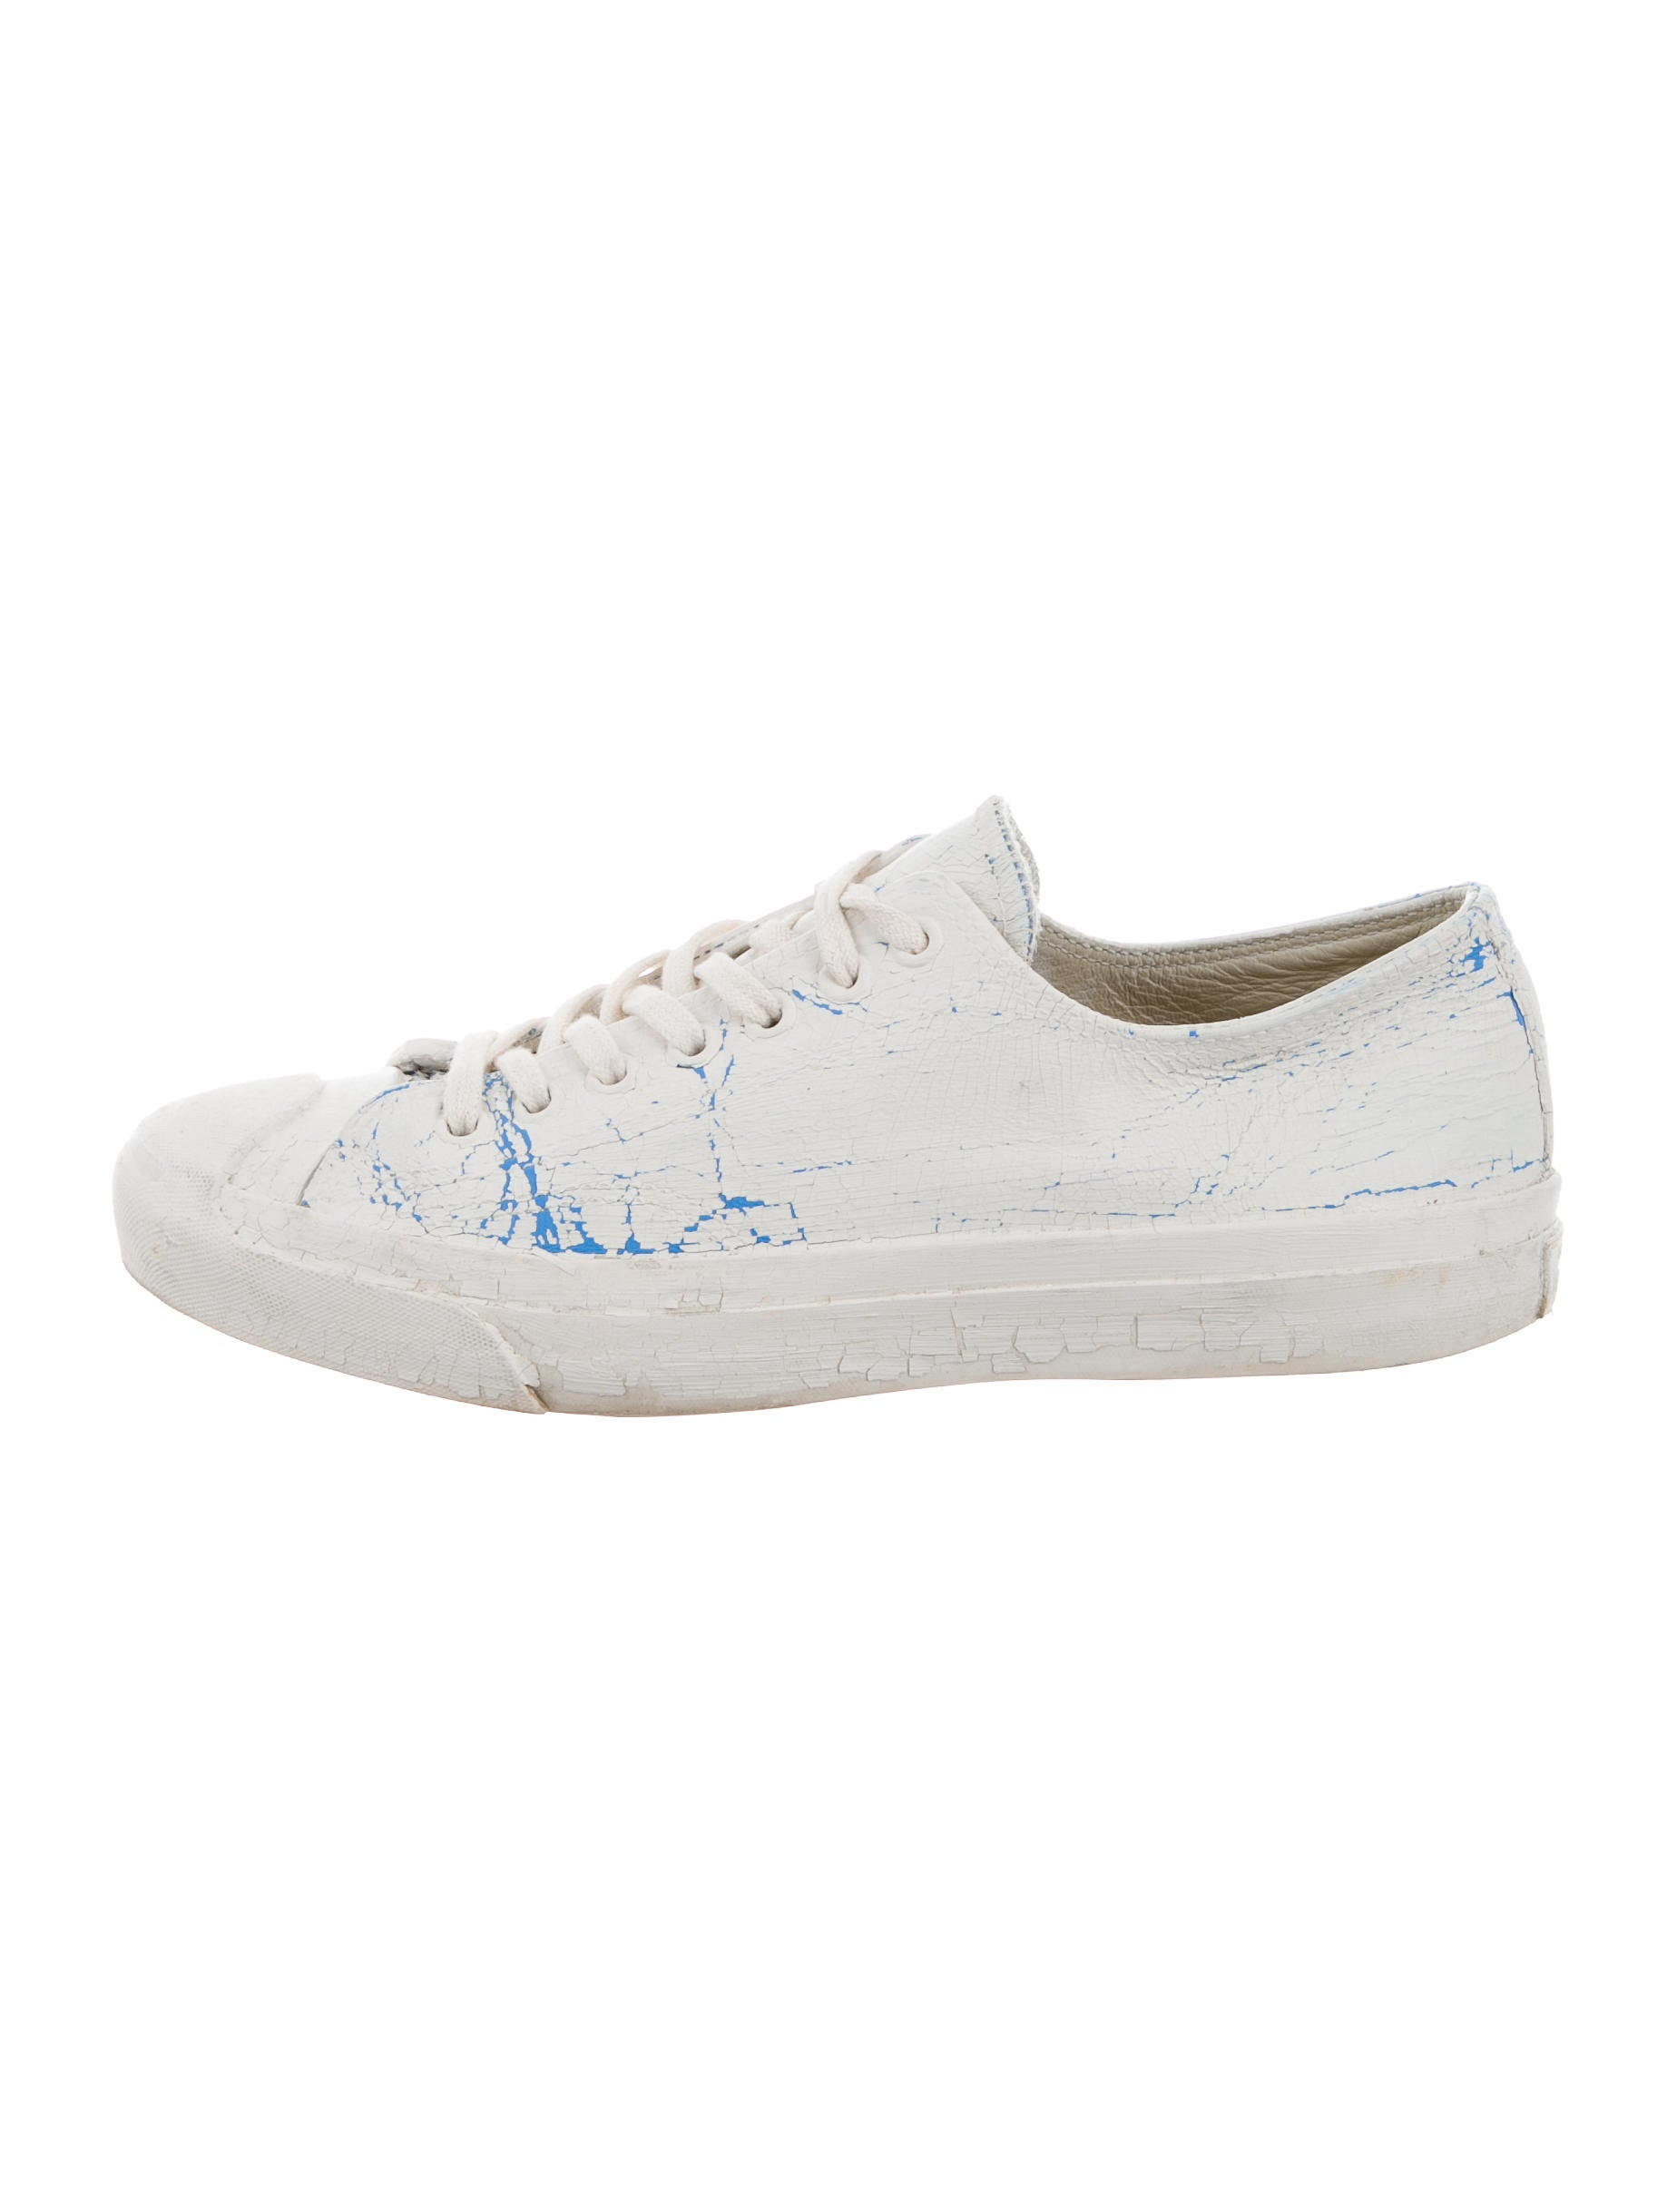 distressed low-top sneakers - White Maison Martin Margiela sMiNWRm